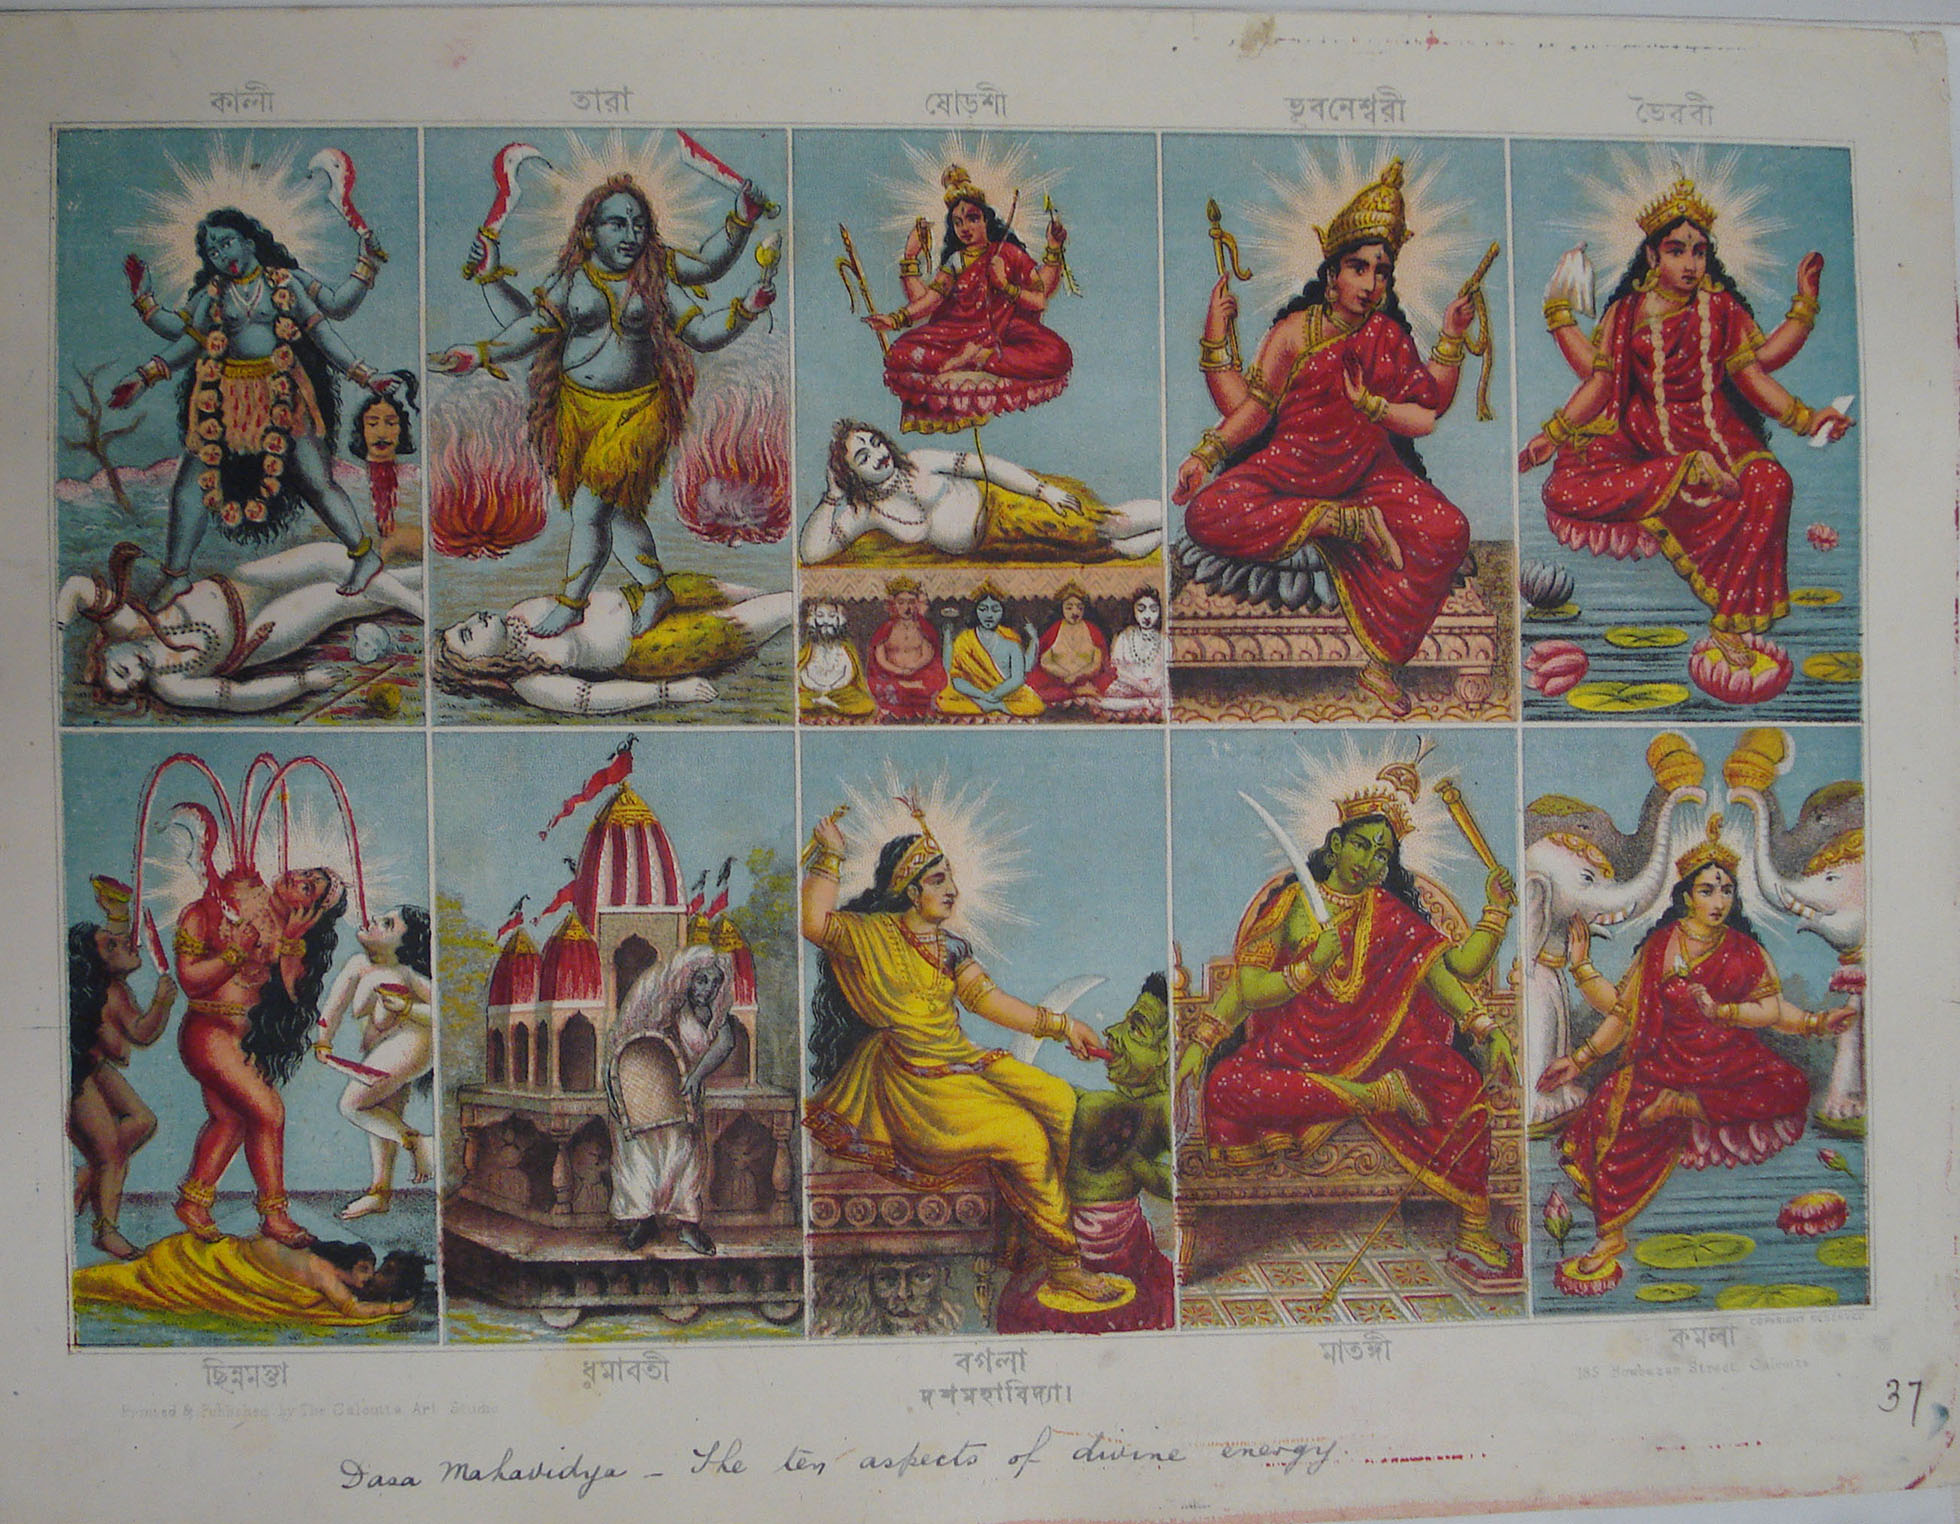 10 images show the Mahavidyas in different aspects.